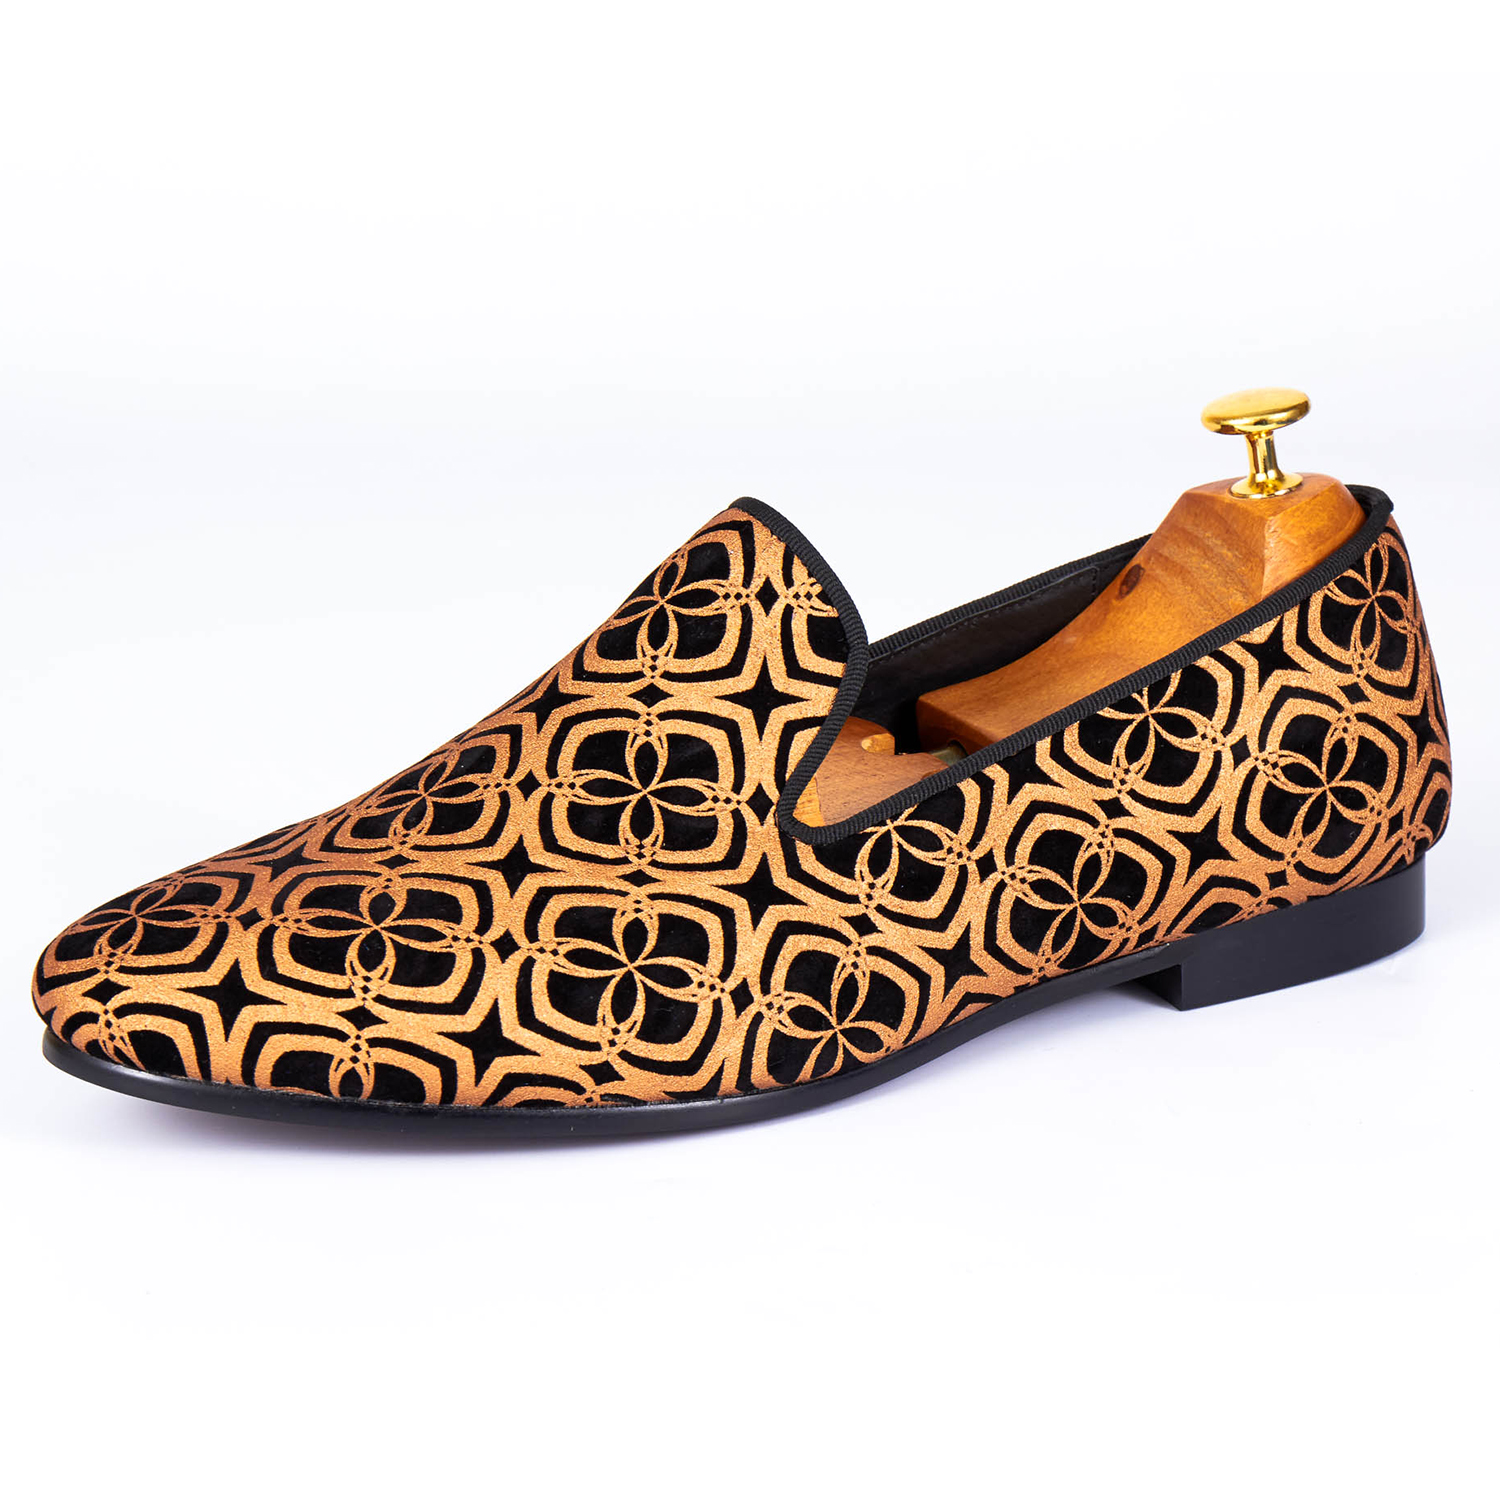 Harpelunde Men Casual Shoes Shinny Loafer Shoes New Arrival Printed Flats Size 7-14 casual men s coconut tree printed boardshorts